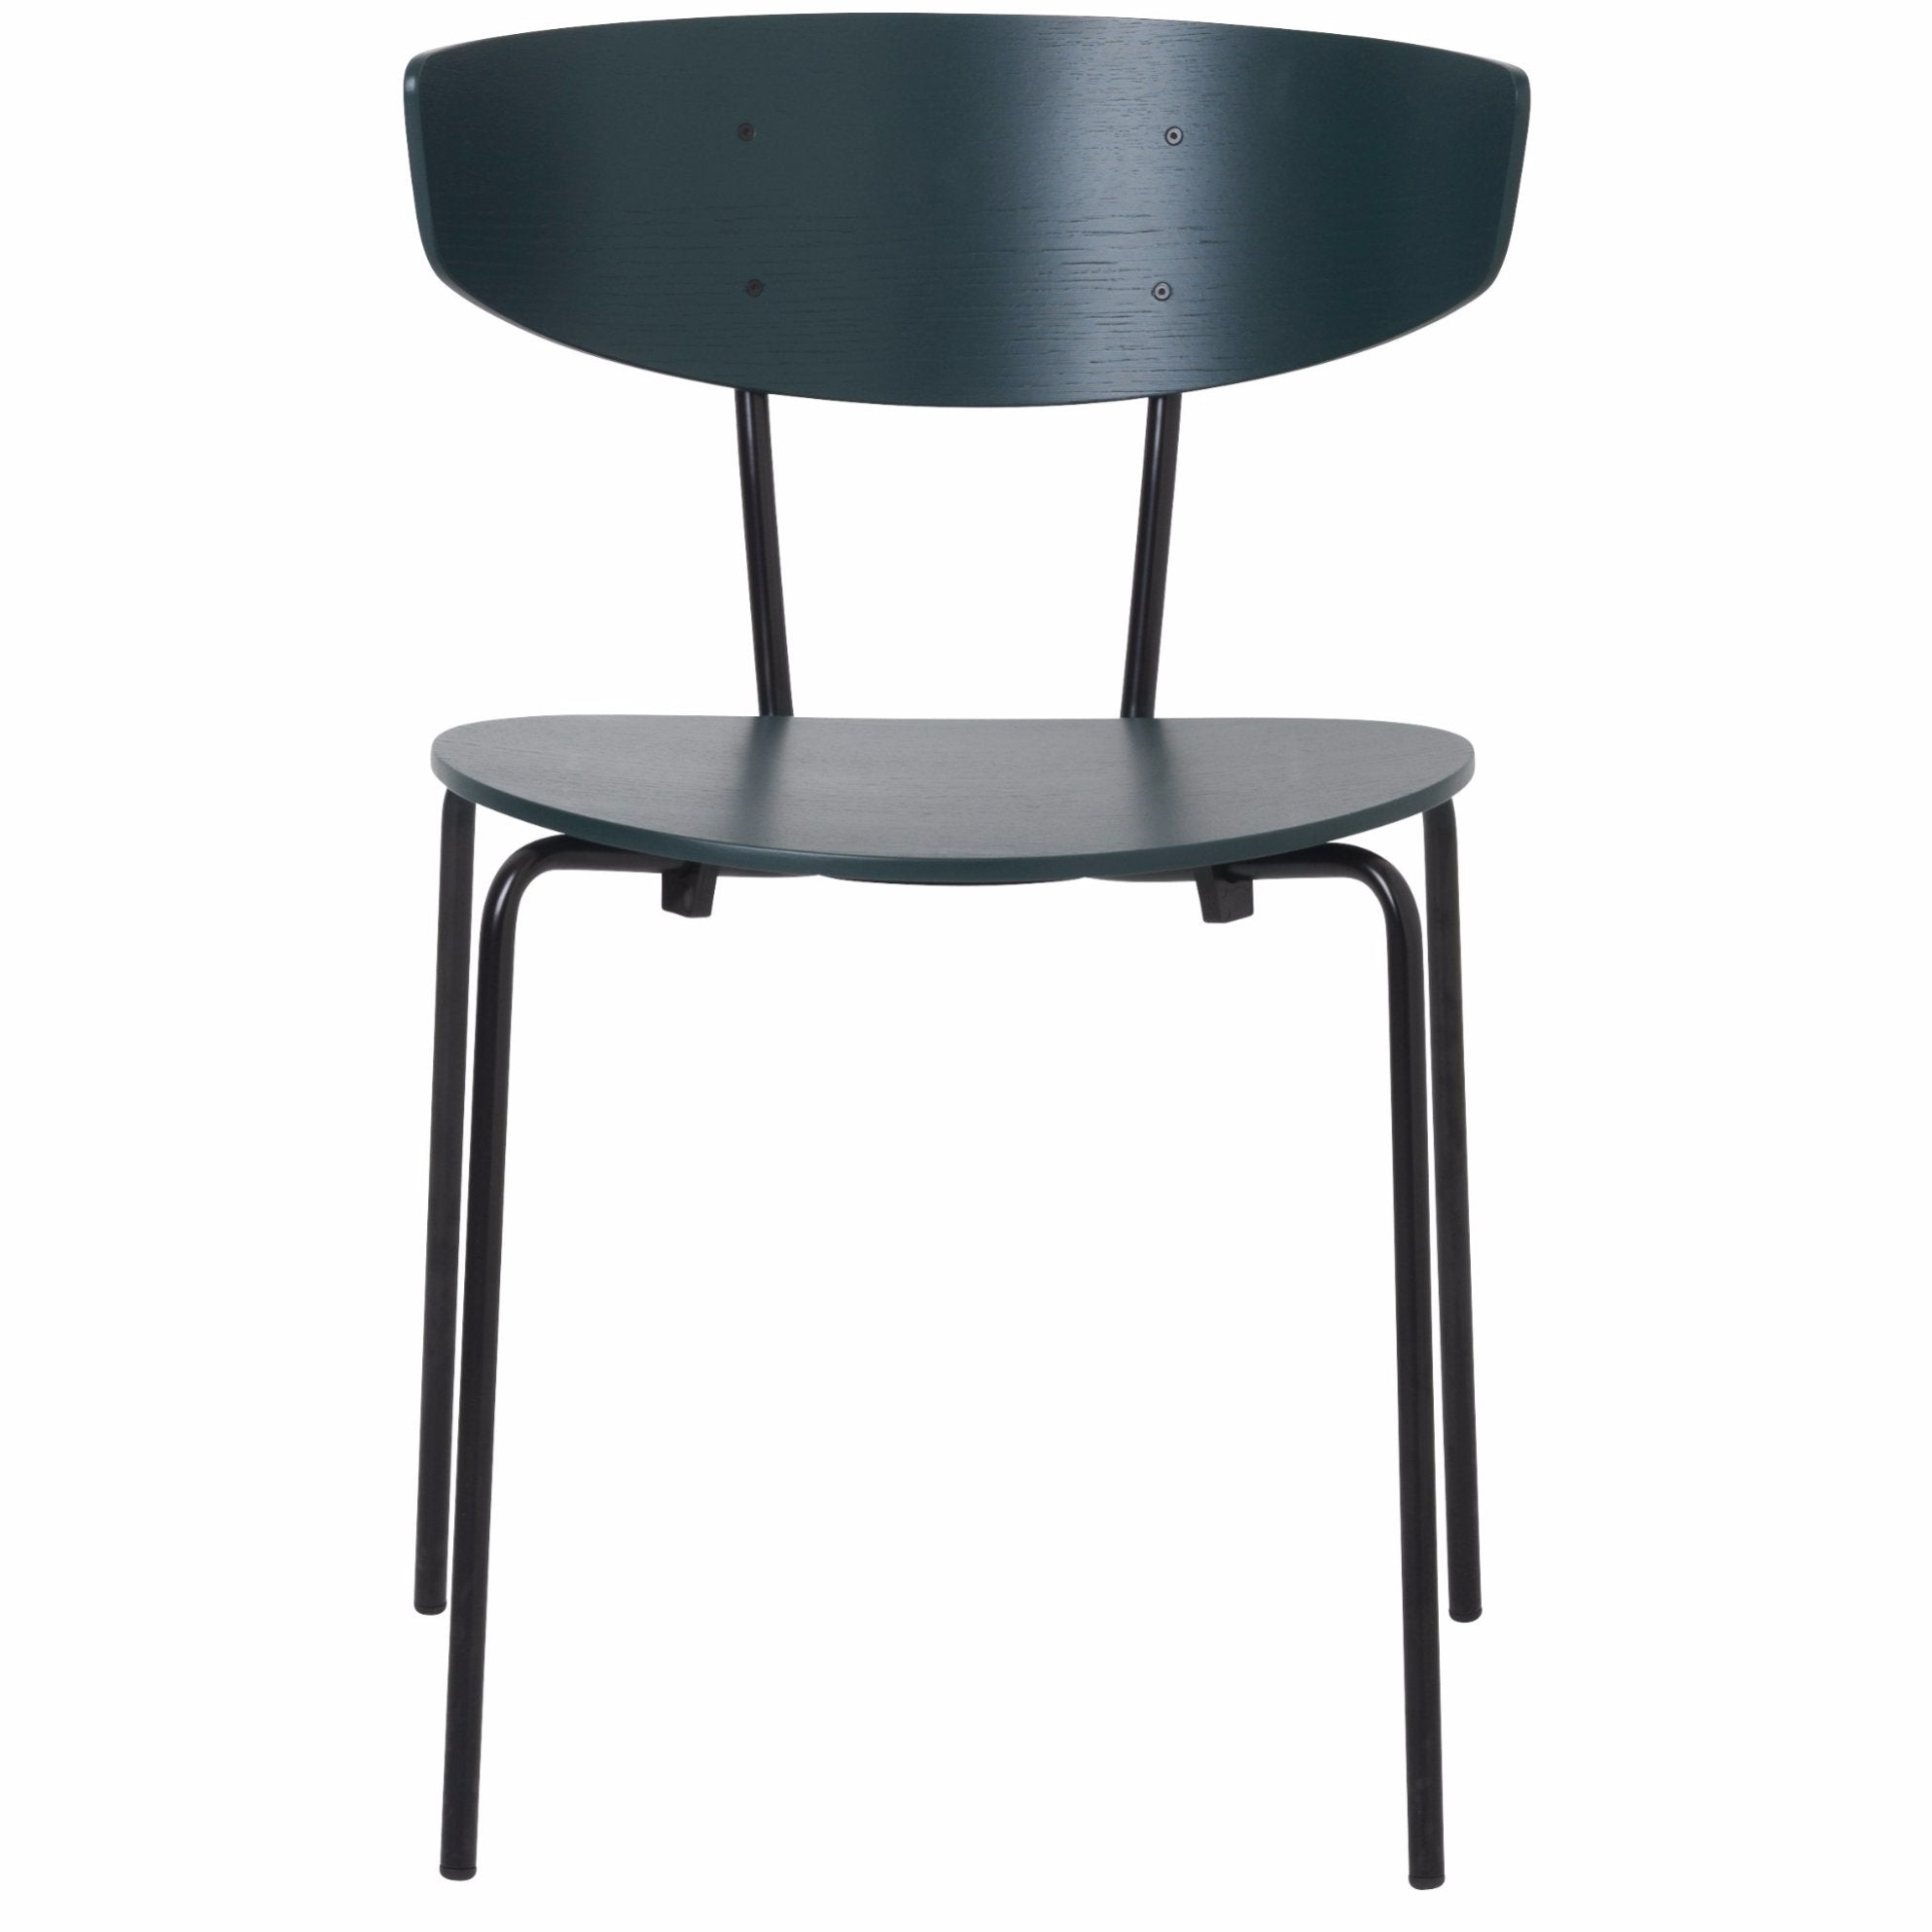 Herman Chair in Dark Green design by Ferm Living – BURKE DECOR